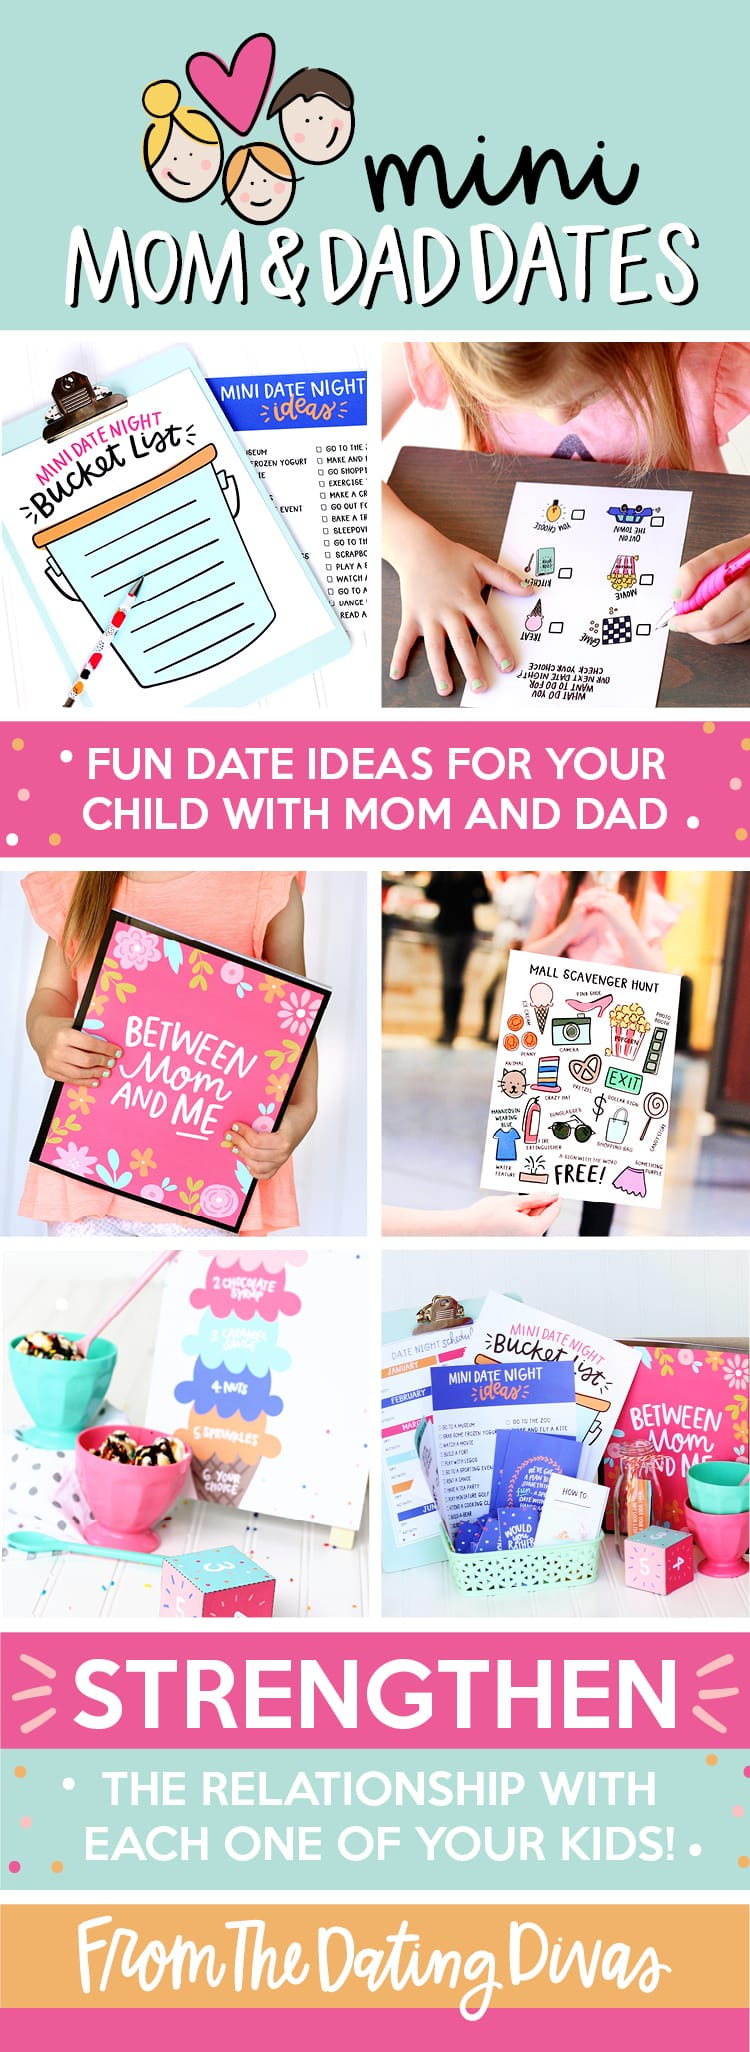 Date Night with Your Kids Ideas